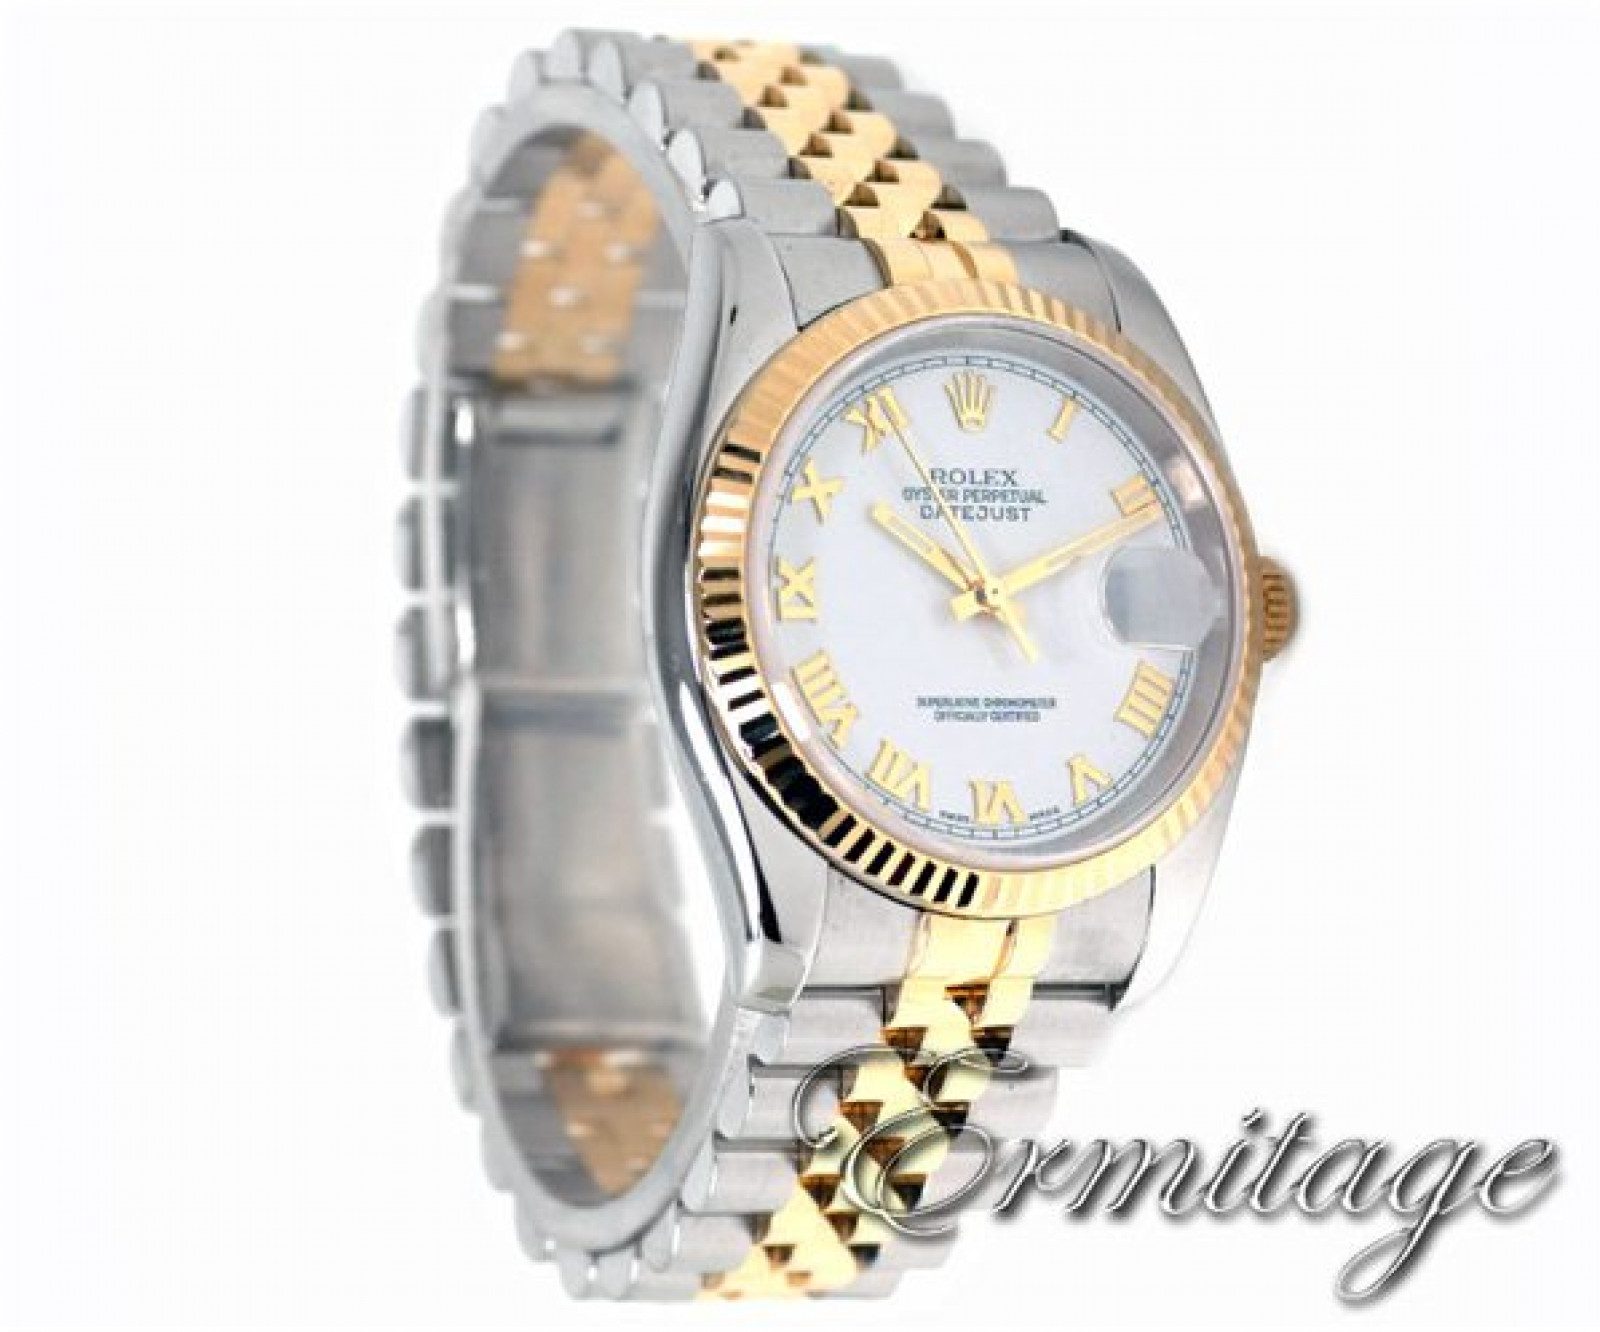 Rolex Datejust 116233 with 18 kt Yellow Gold